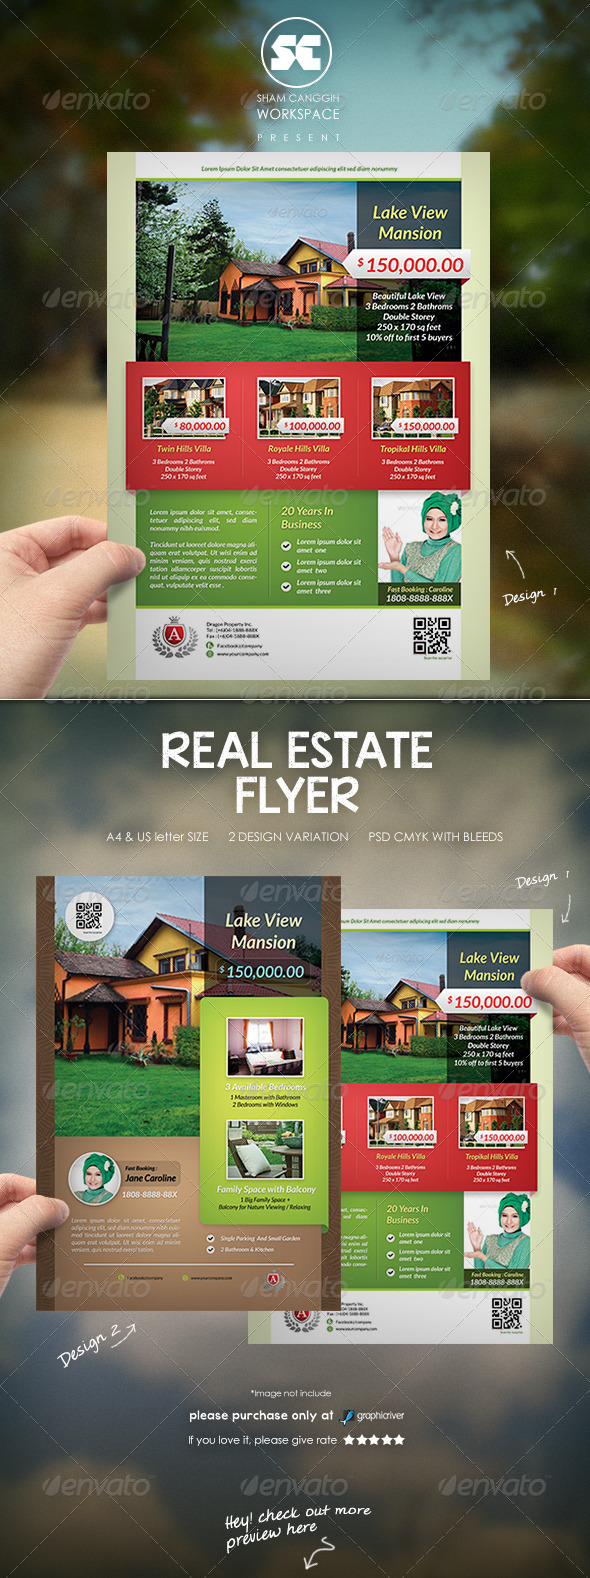 Real Estate Flyer / Magazine Ads